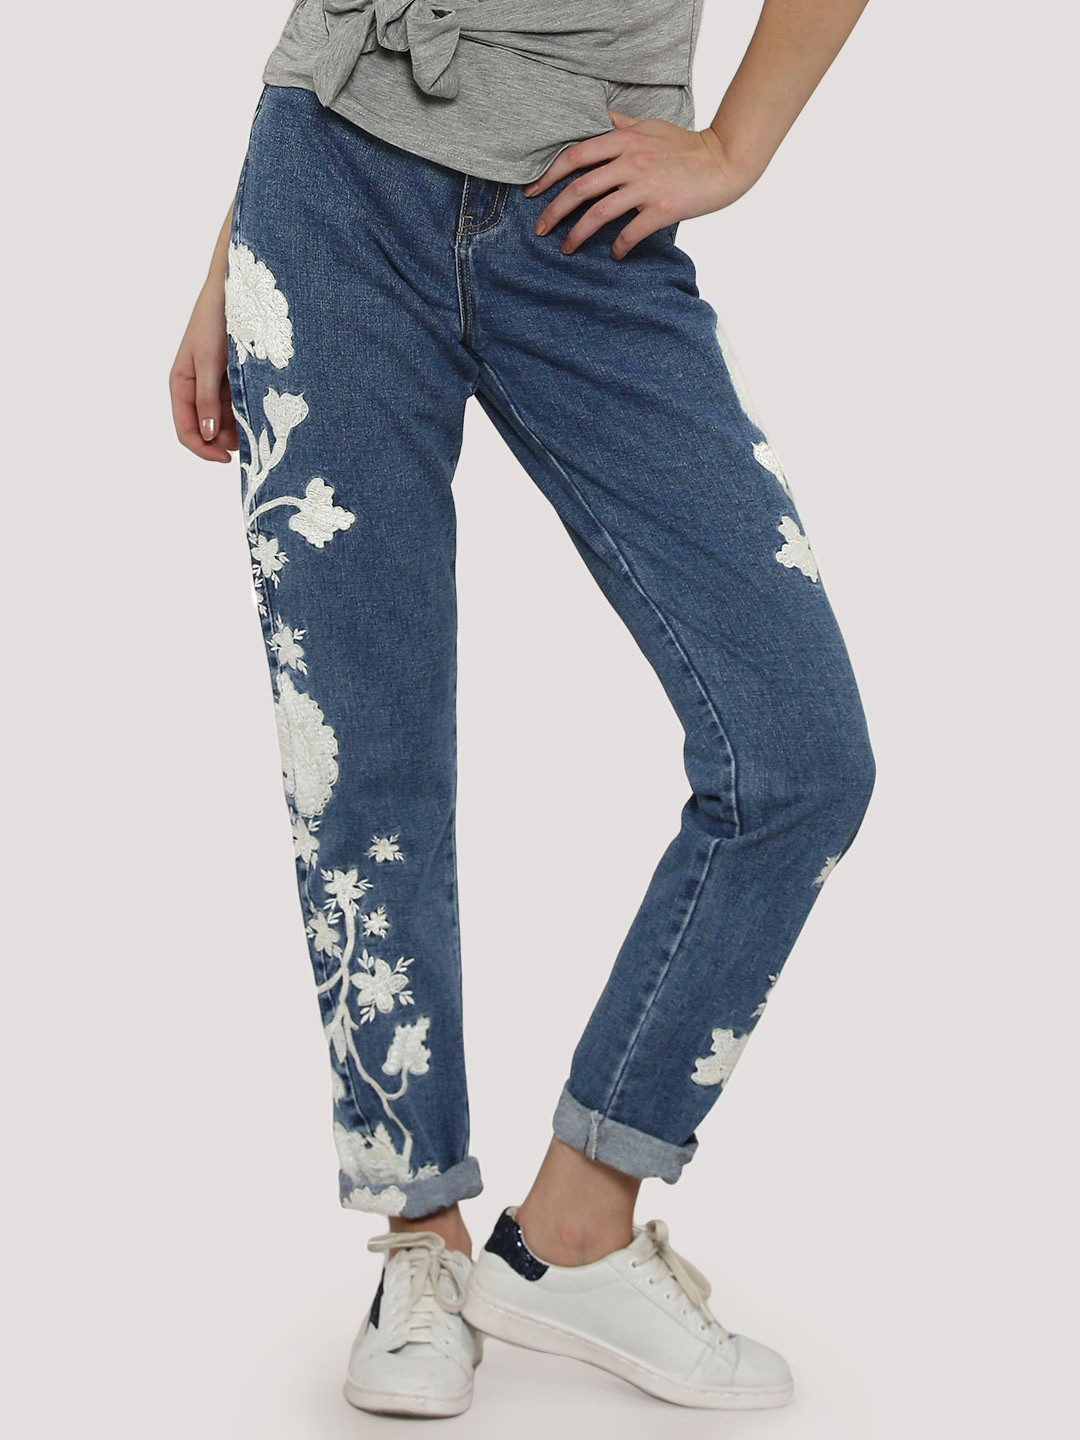 Buy glamorous floral embroidered jeans for women s